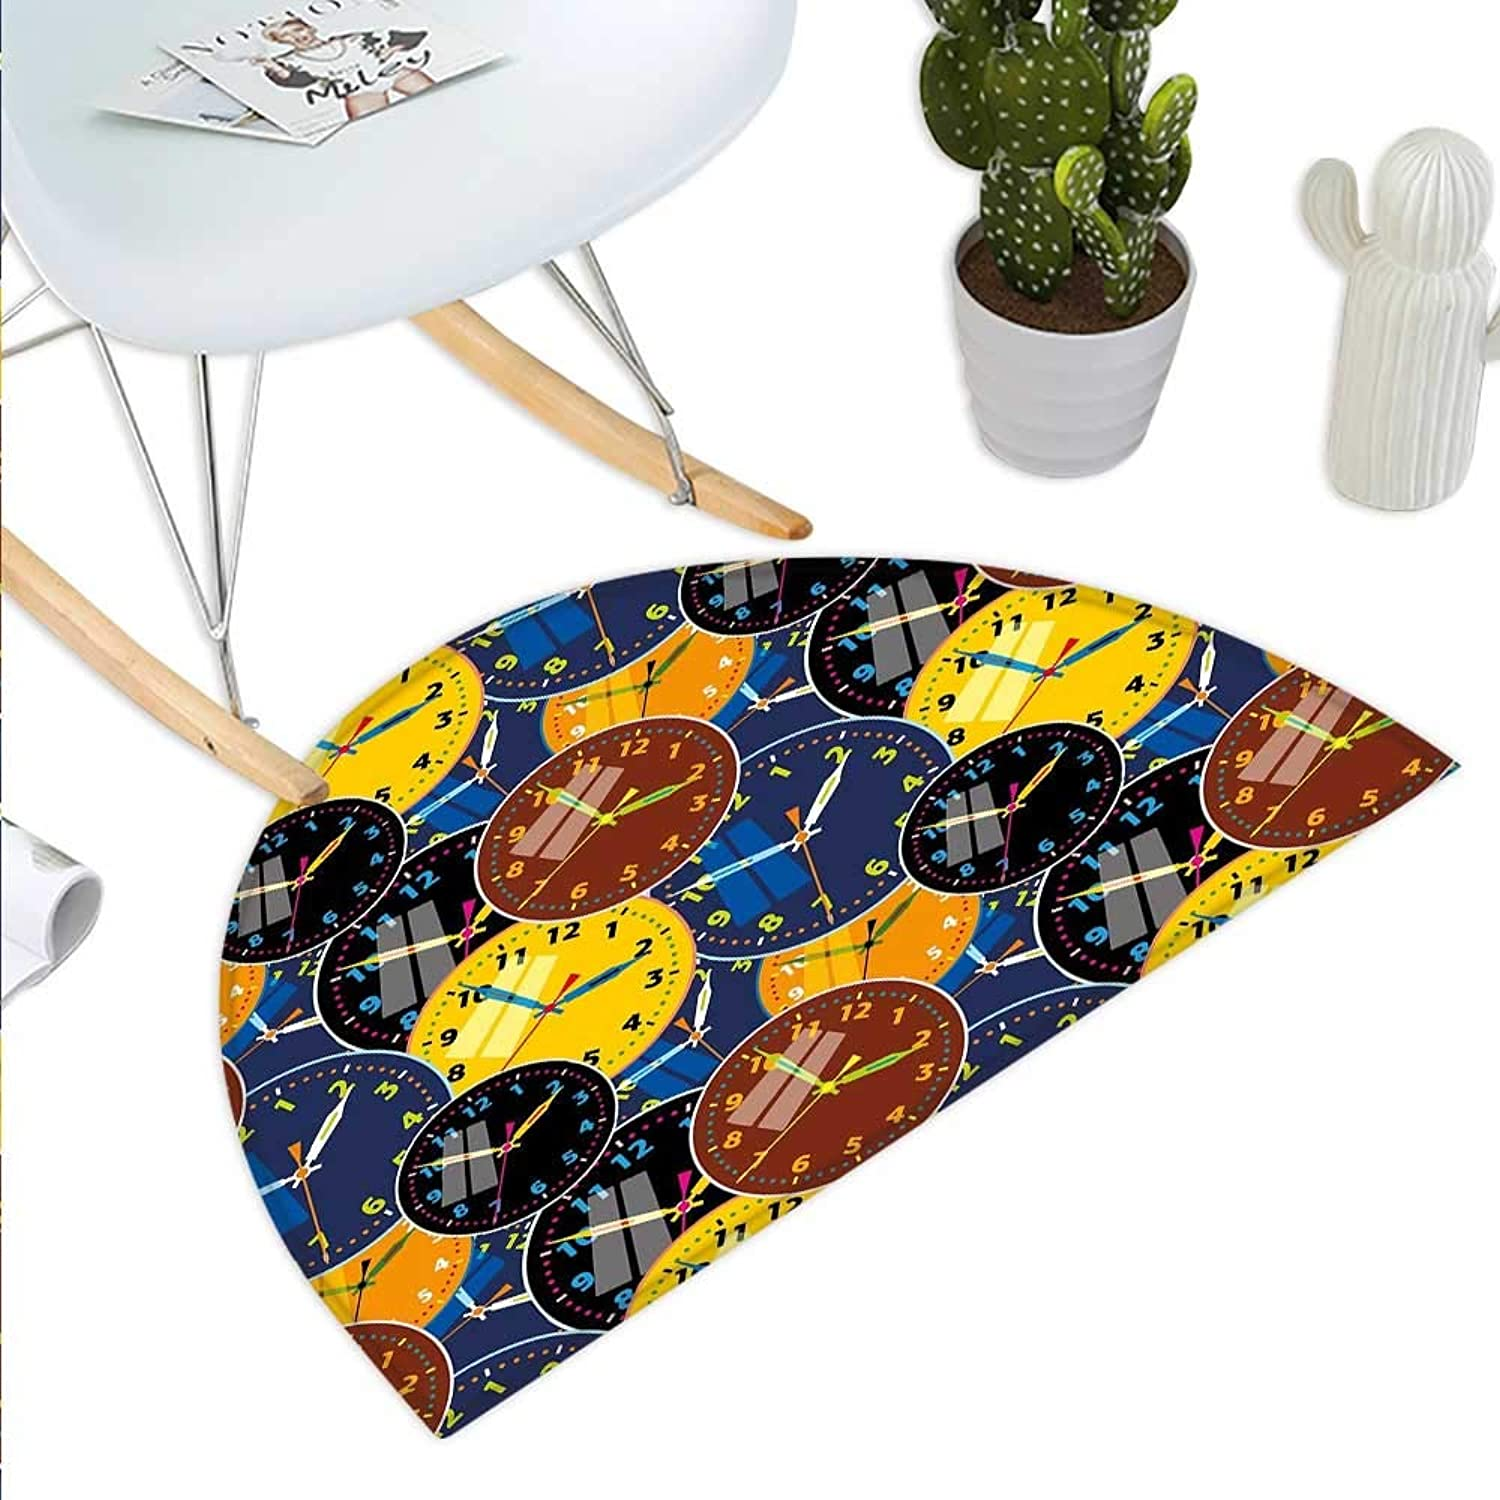 Clock Semicircle Doormat A Pattern with Clock Faces on It Vintage Style Inspired Illustration Design Halfmoon doormats H 39.3  xD 59  Yellow and Black